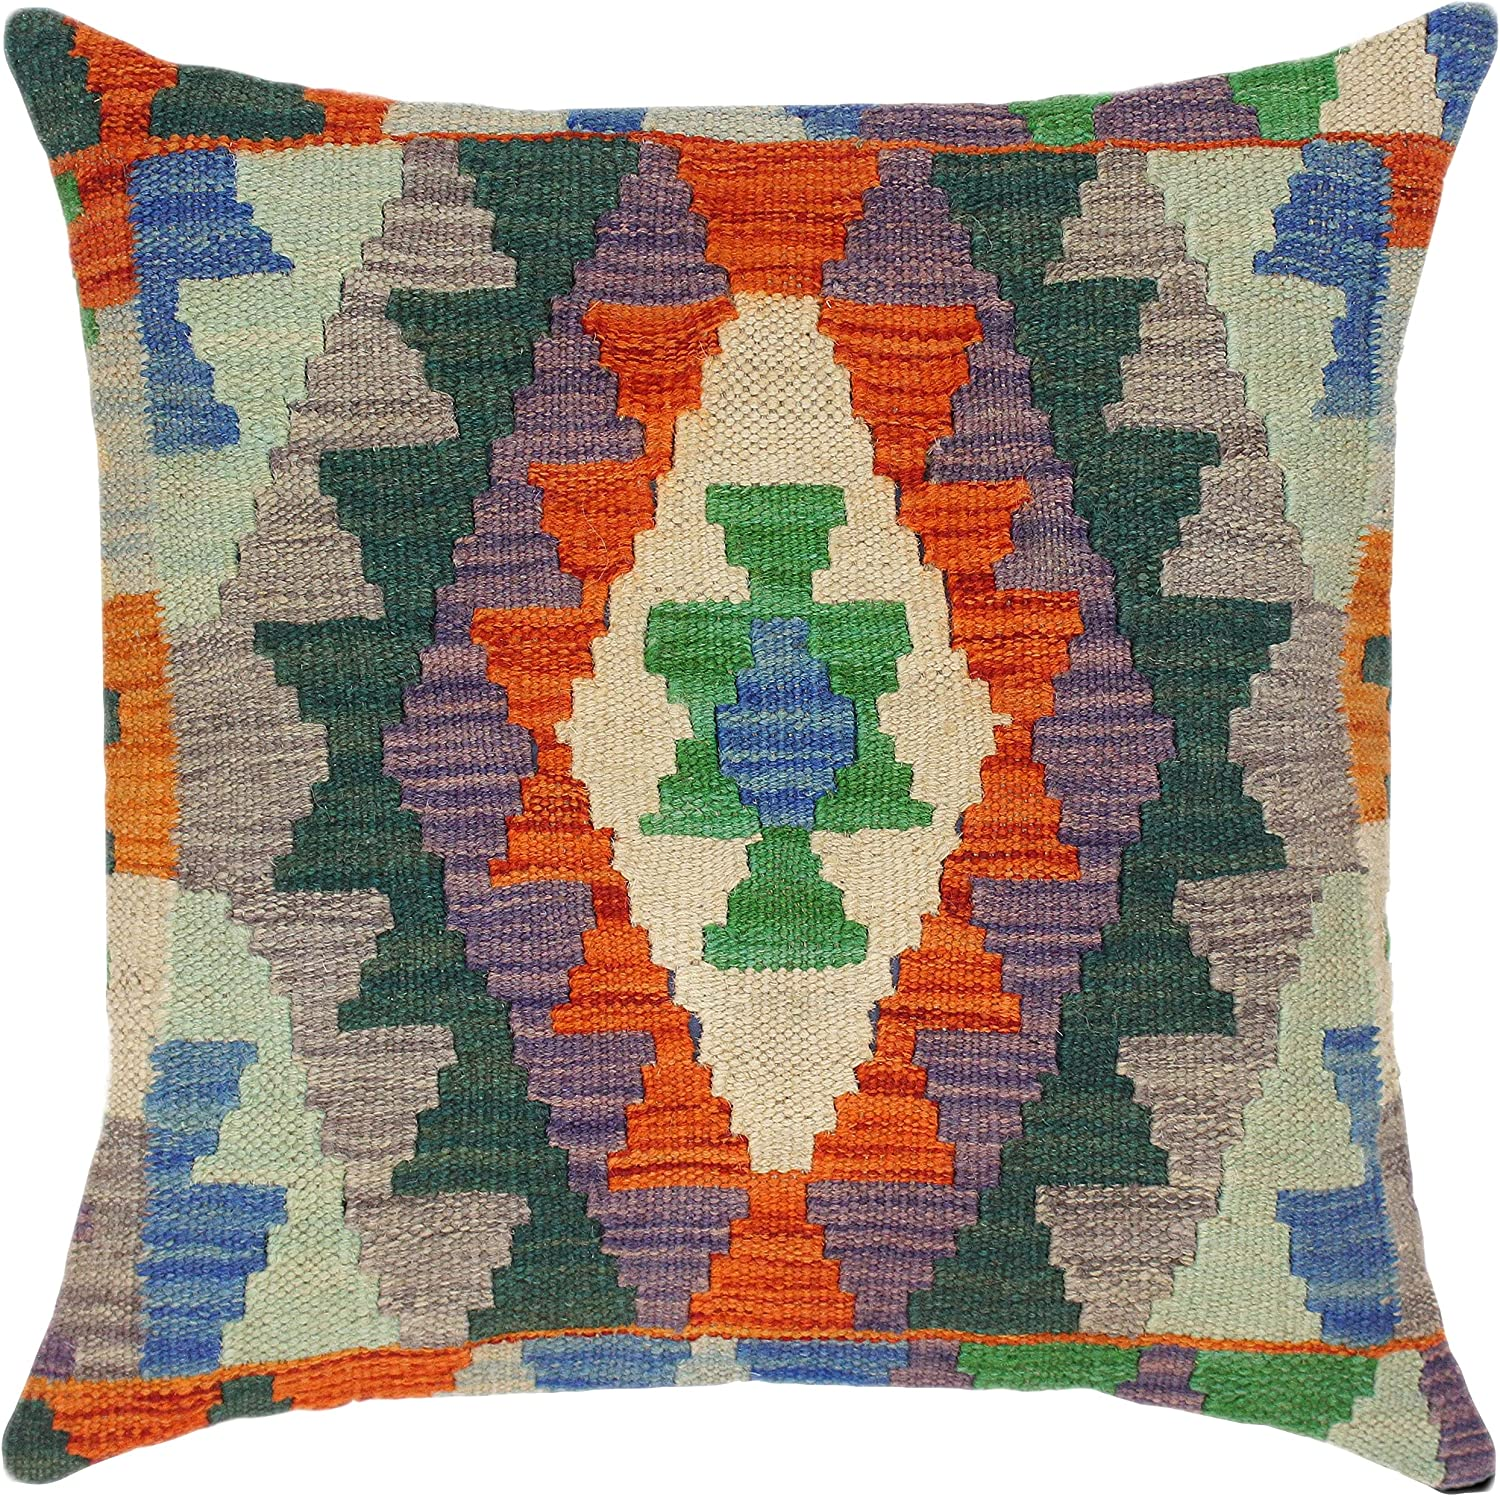 Southwestern Turkish Discount mail Max 56% OFF order Alejandr Hand Woven Throw Kilim Pillow